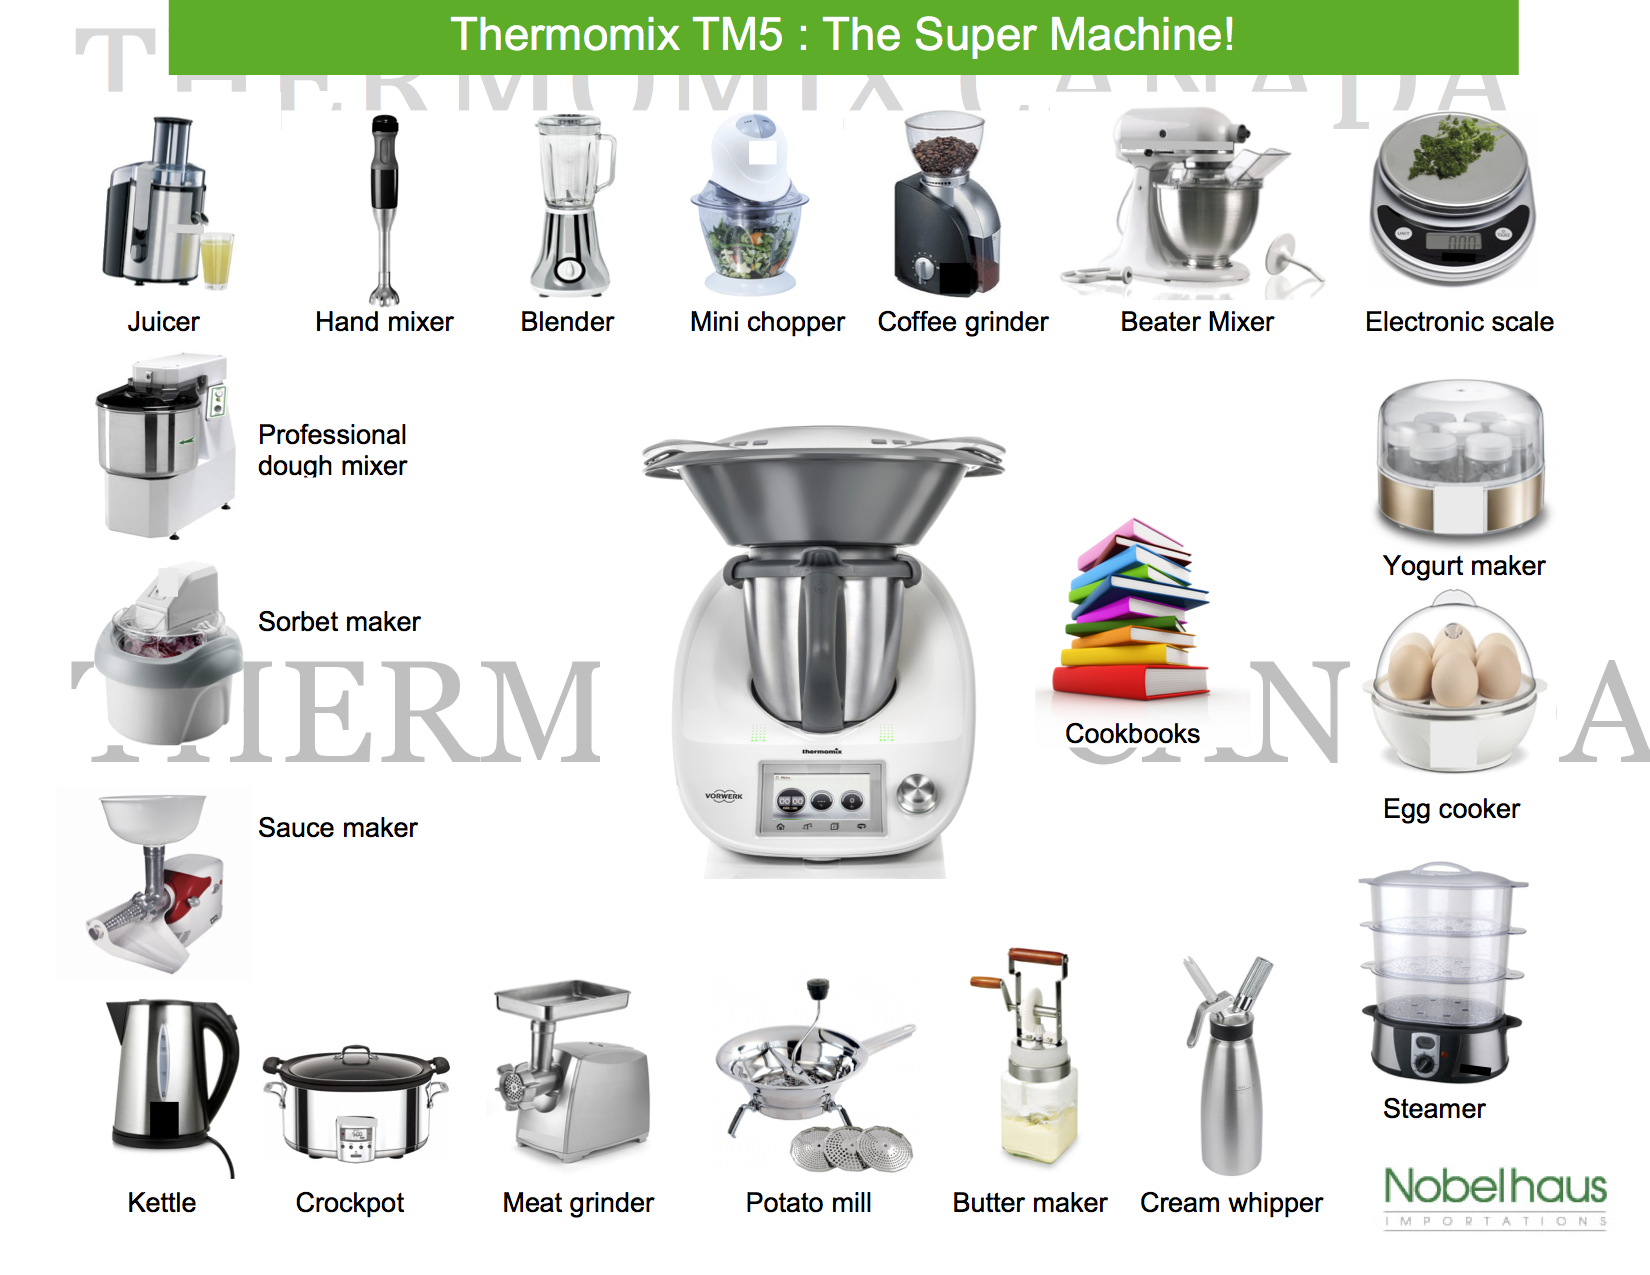 thermomix tm5 thermomix canada mi chef favorita. Black Bedroom Furniture Sets. Home Design Ideas